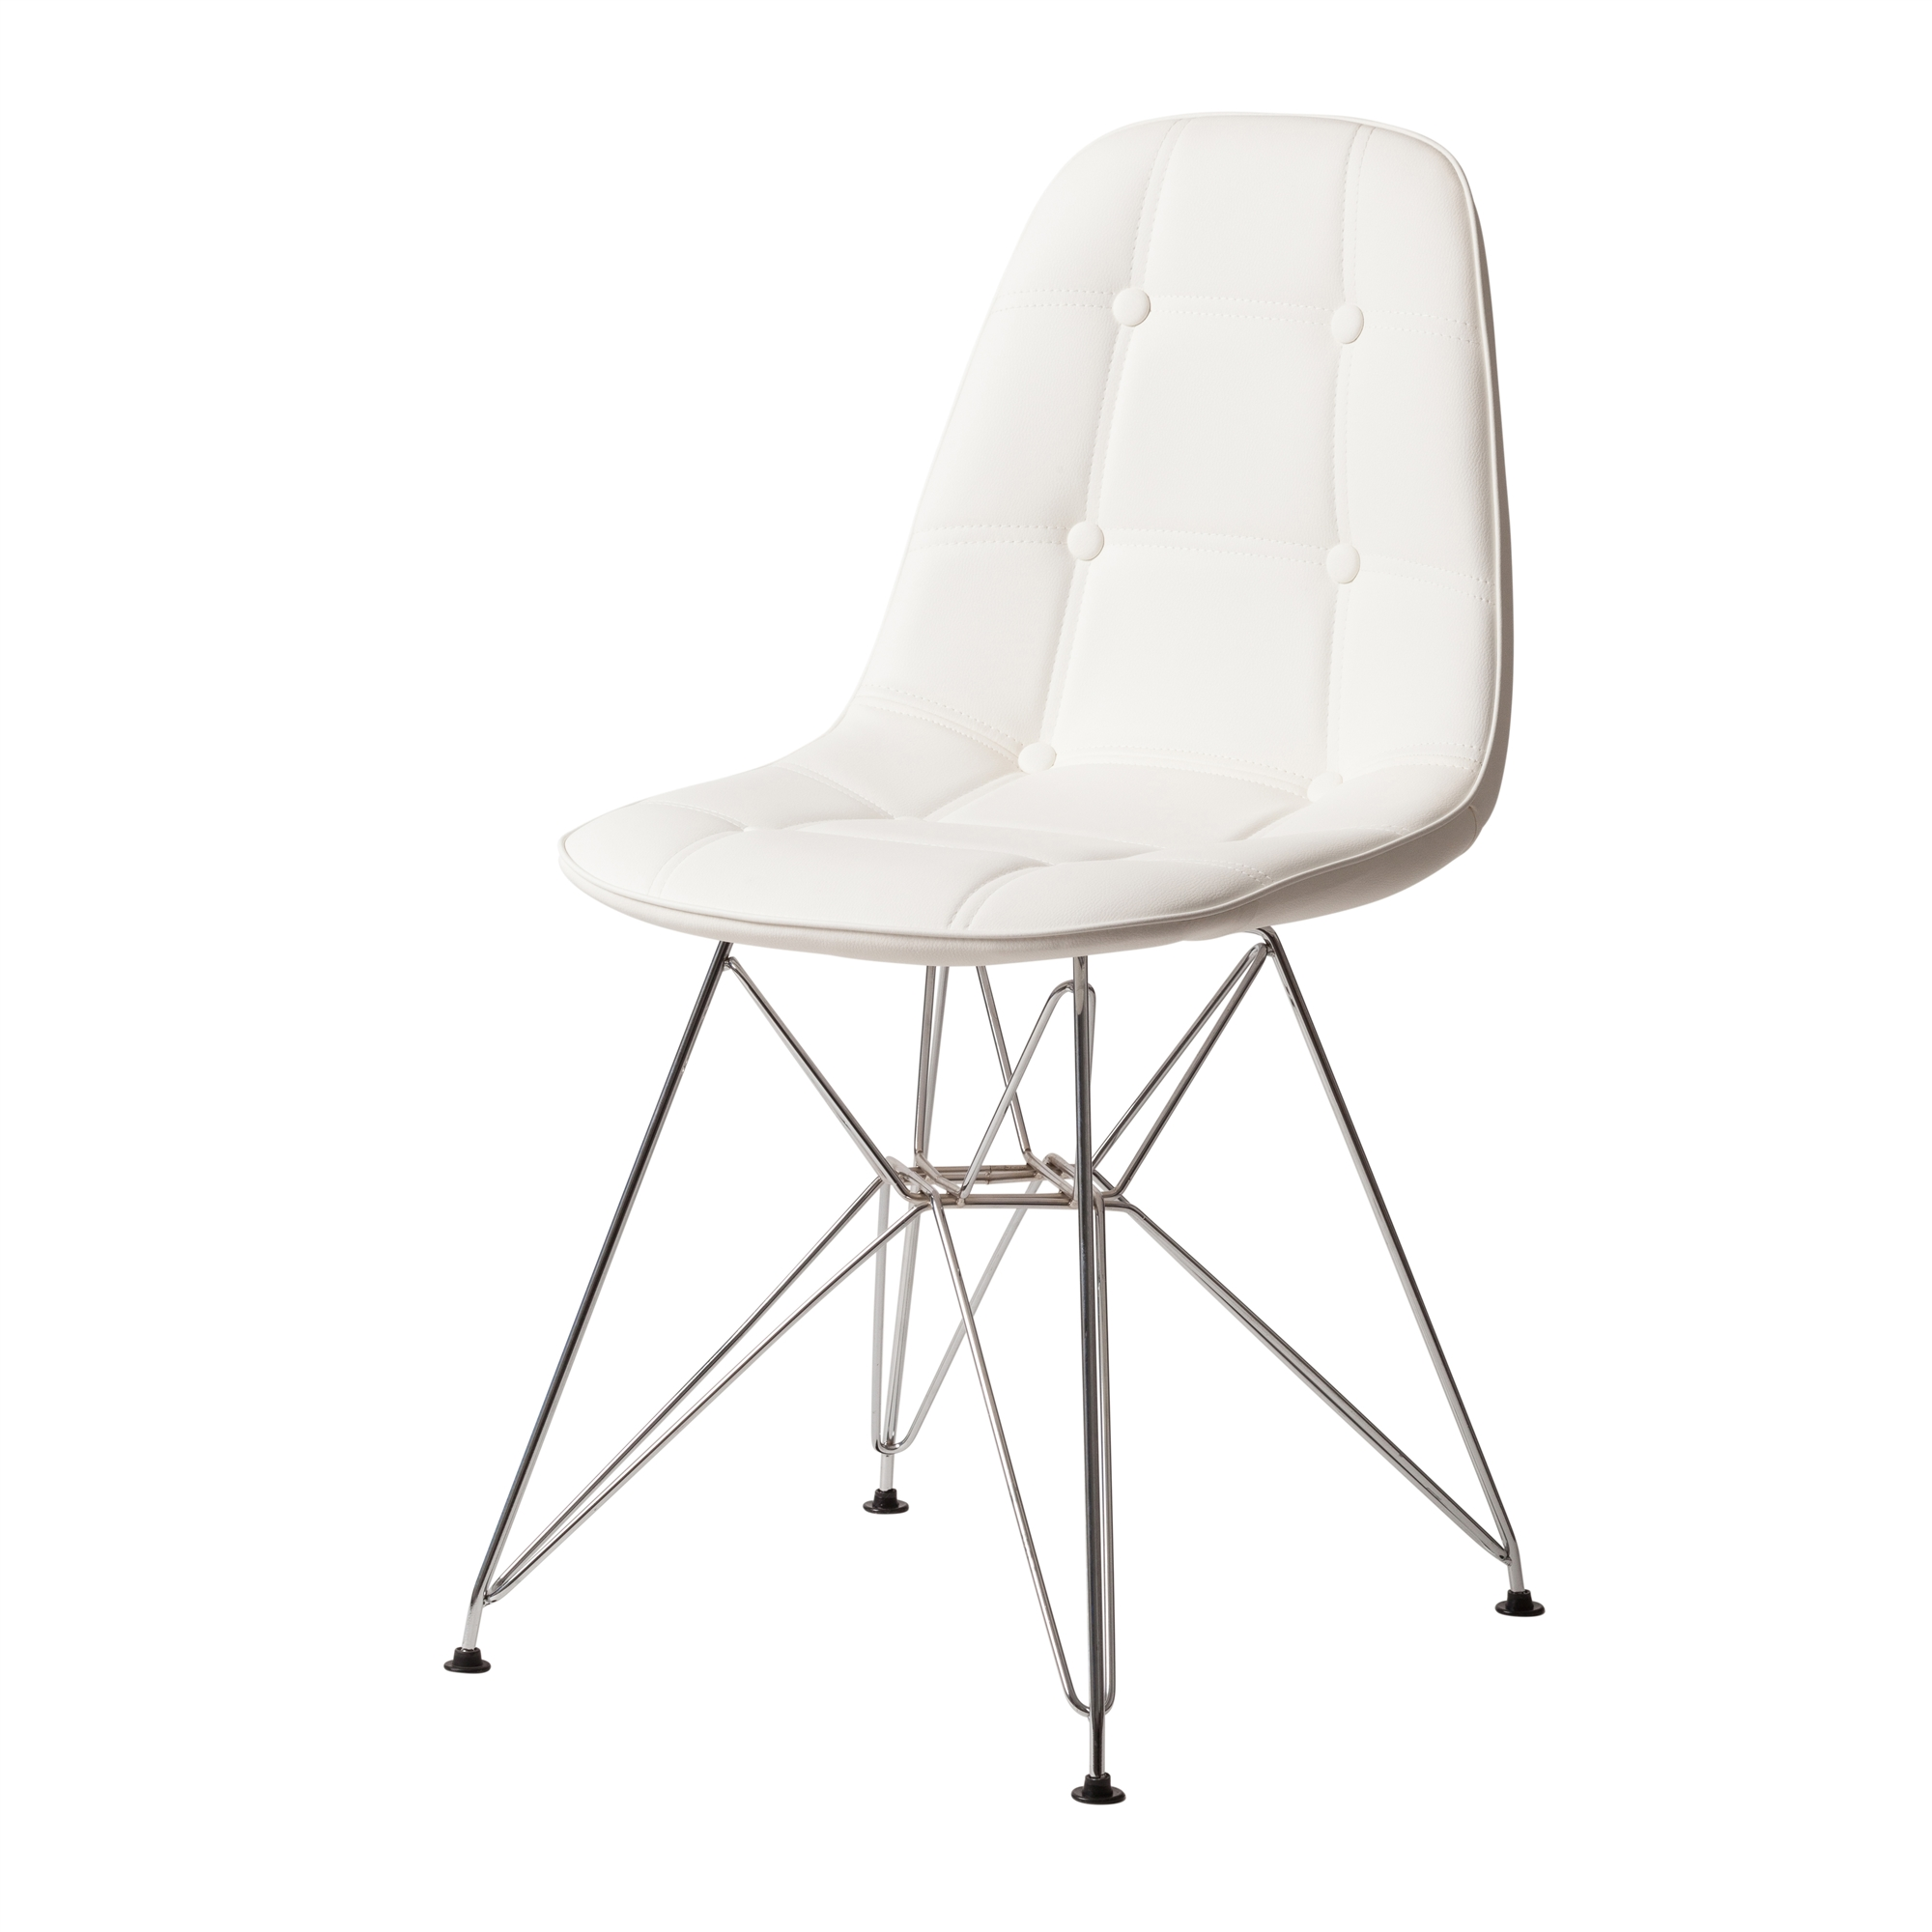 Admirable Dsr Style White Leather Side Chair With Chrome Legs Machost Co Dining Chair Design Ideas Machostcouk